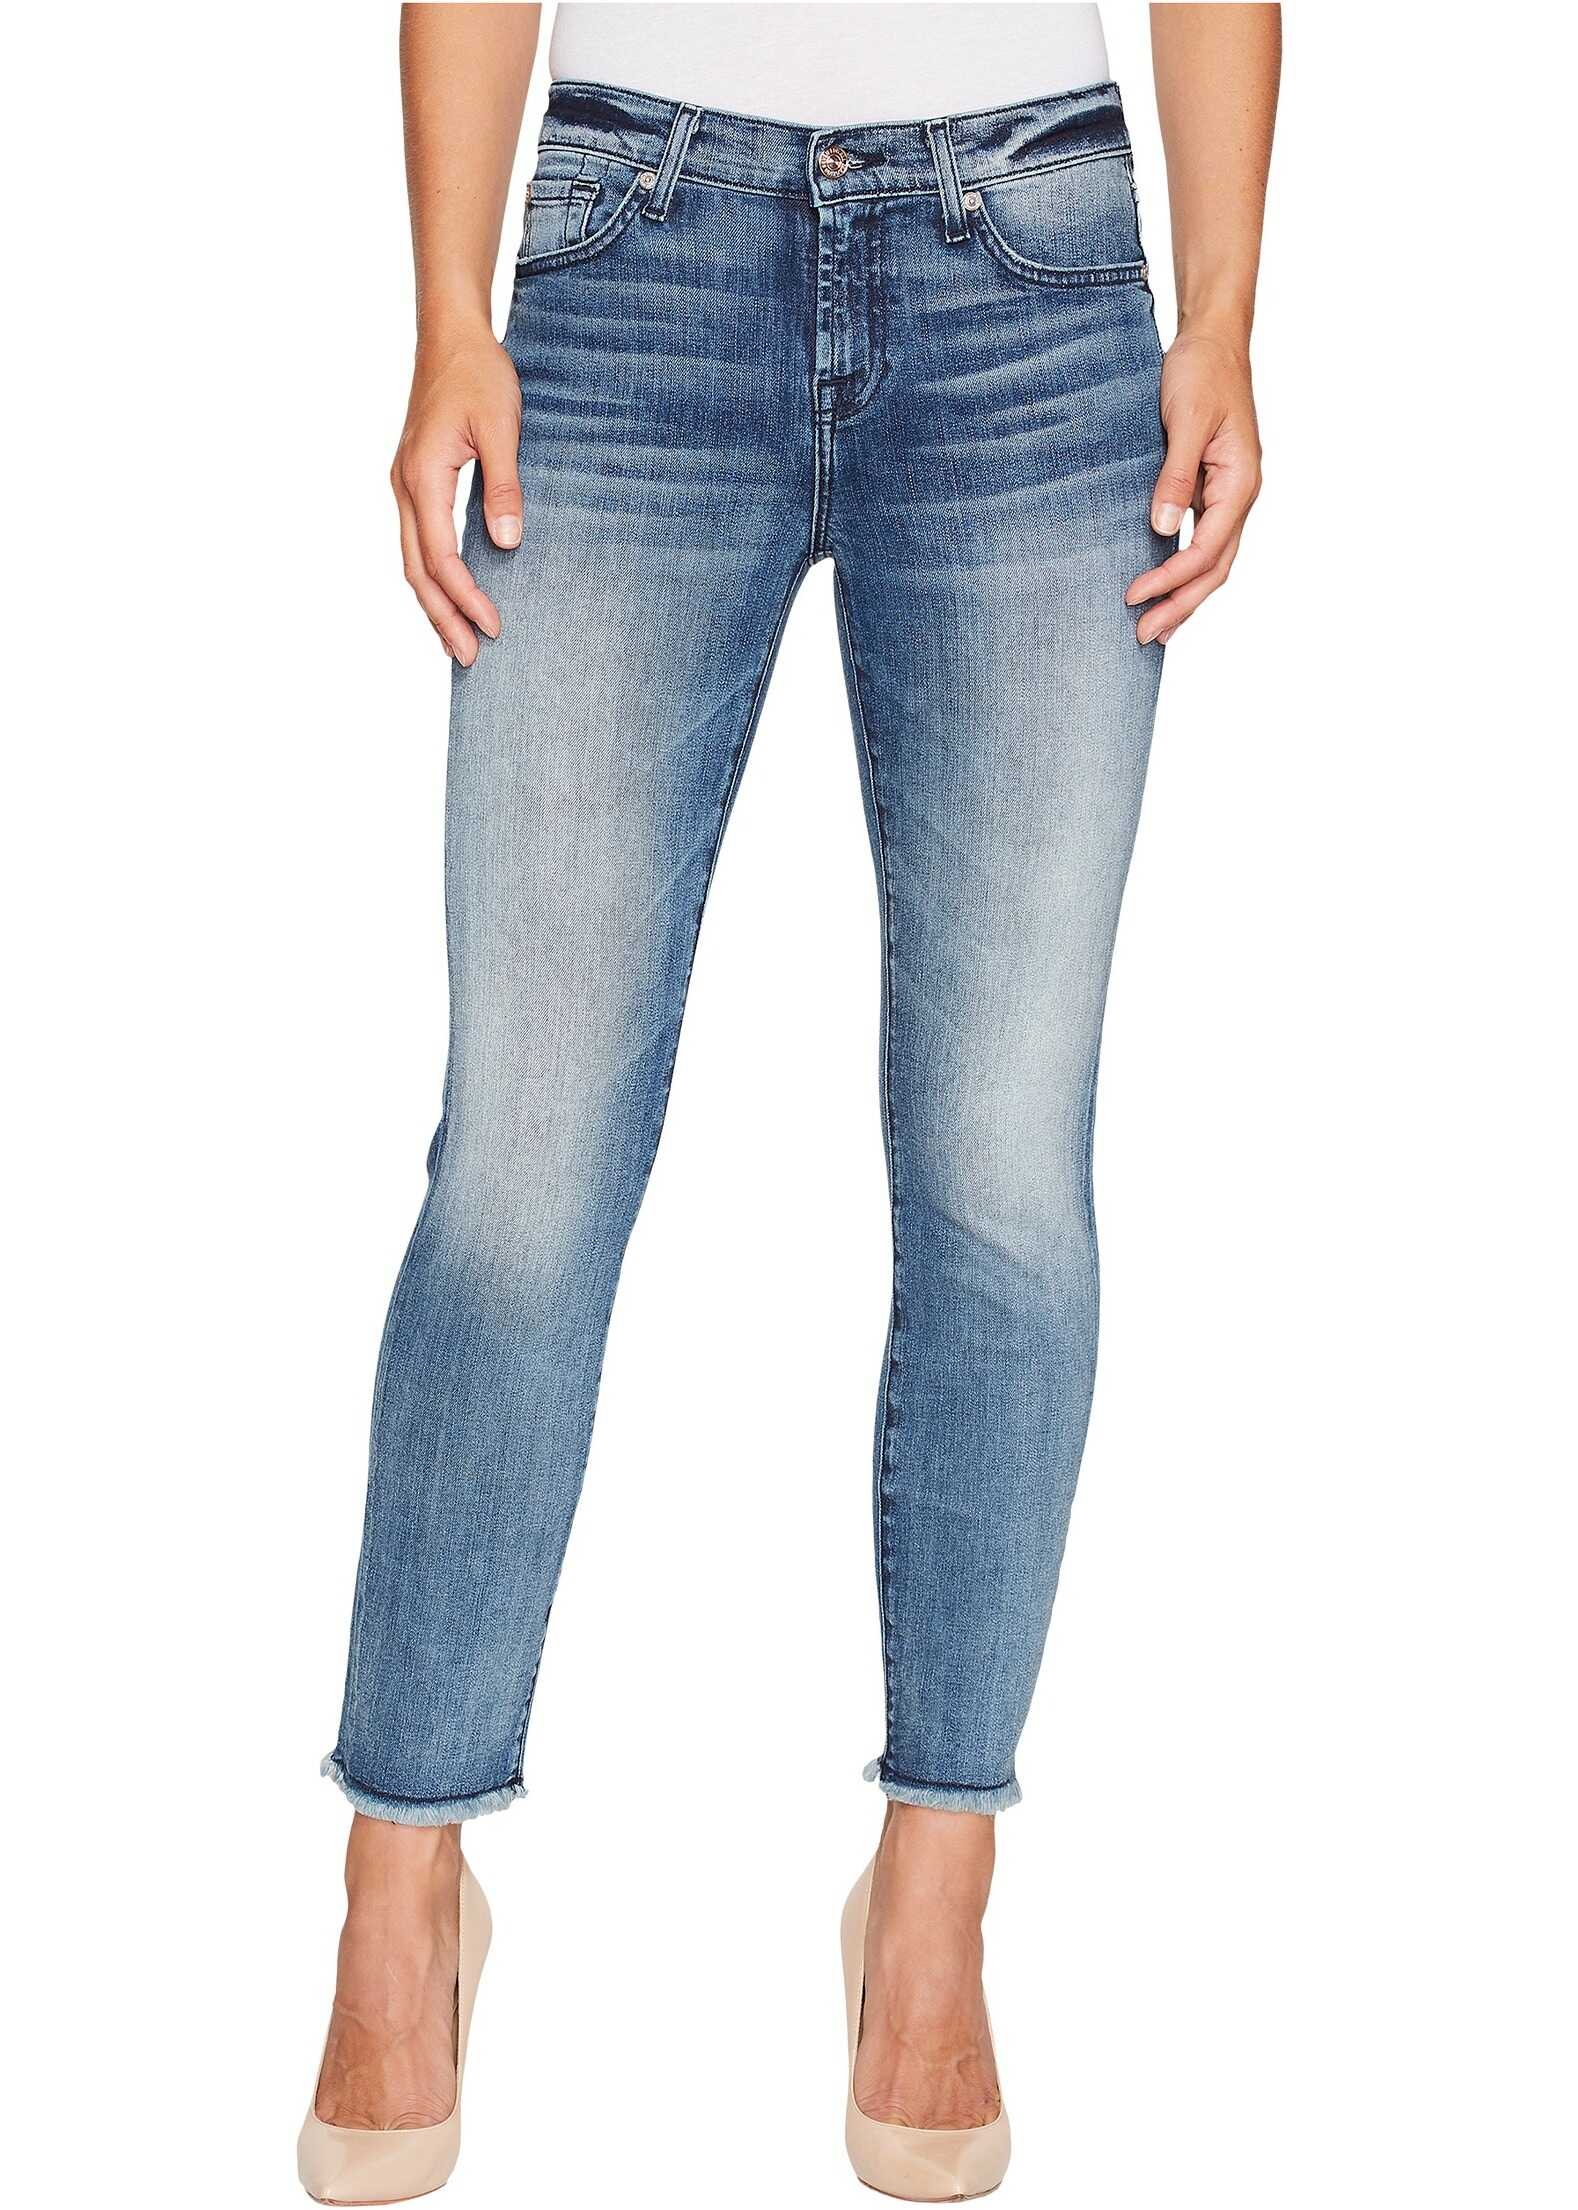 7 For All Mankind Roxanne Ankle w/ Raw Hem in Wall Street Heritage Wall Street Heritage